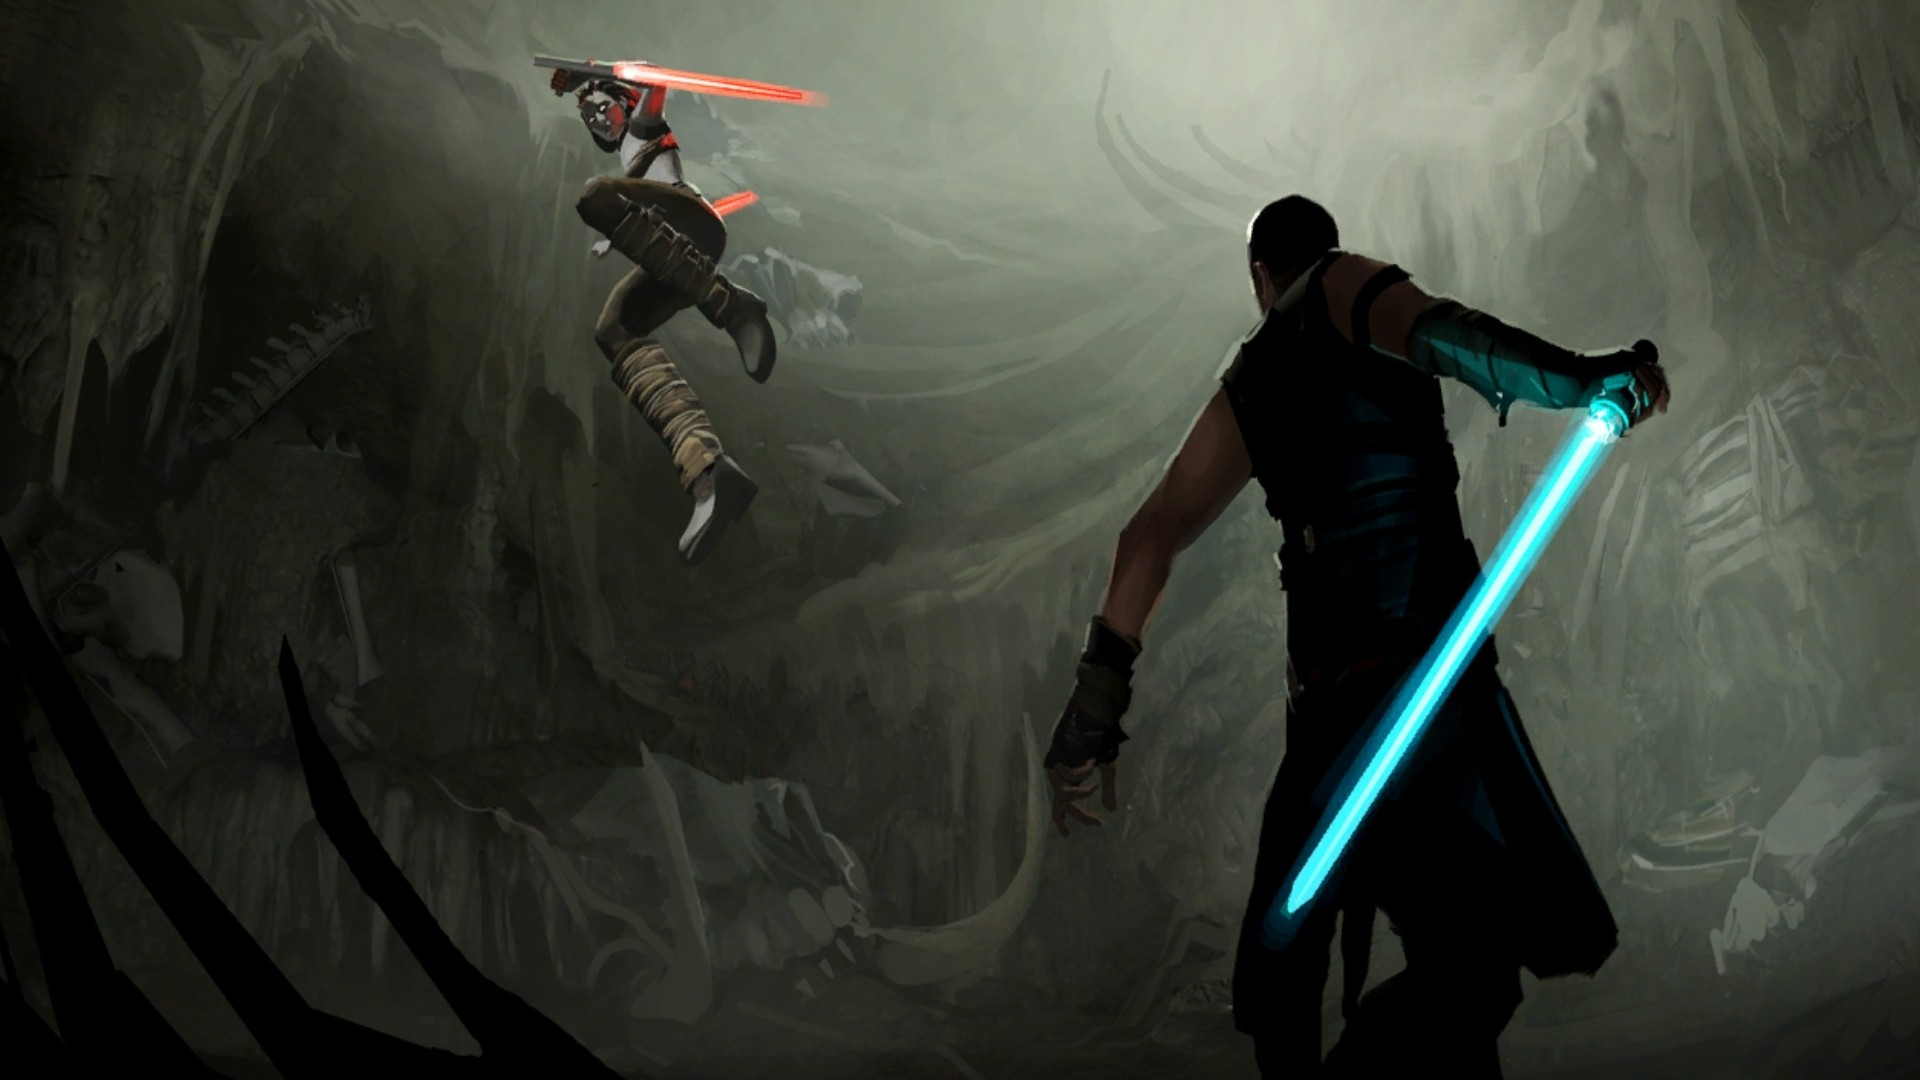 Star Wars Jedi Wallpaper 1 Download Free High Resolution